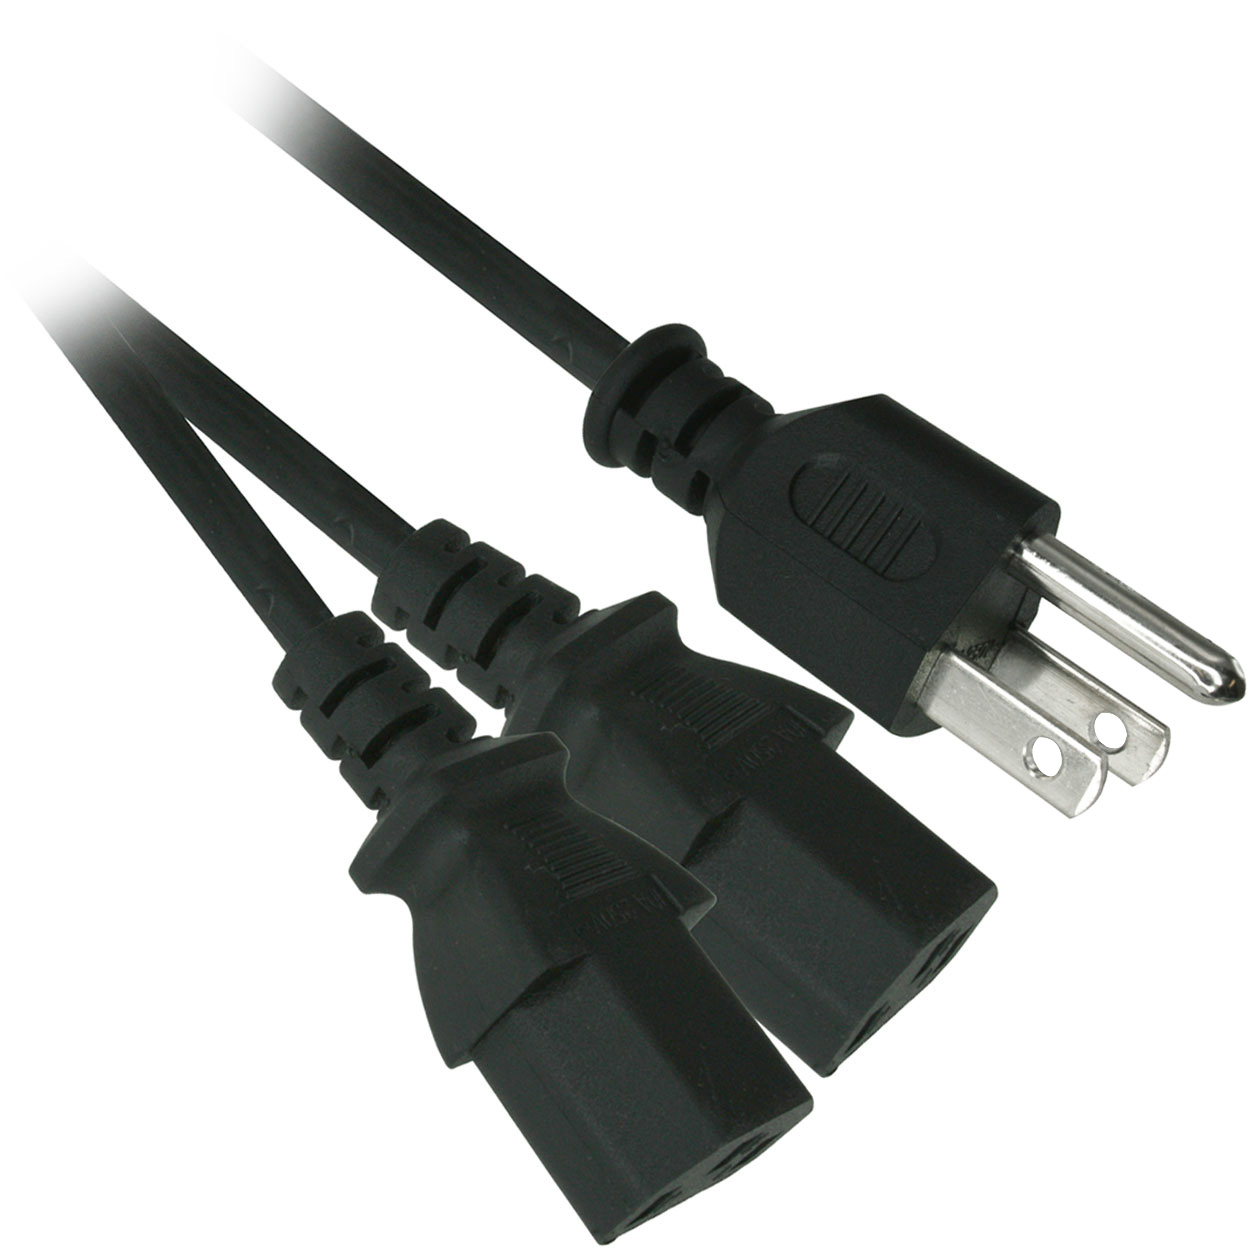 6ft 18awg Ac Power Cord Nema 5 15p To Iec 60320 C13 Ul Csa Listed Wiring Plug Connector C15 Computer Socket